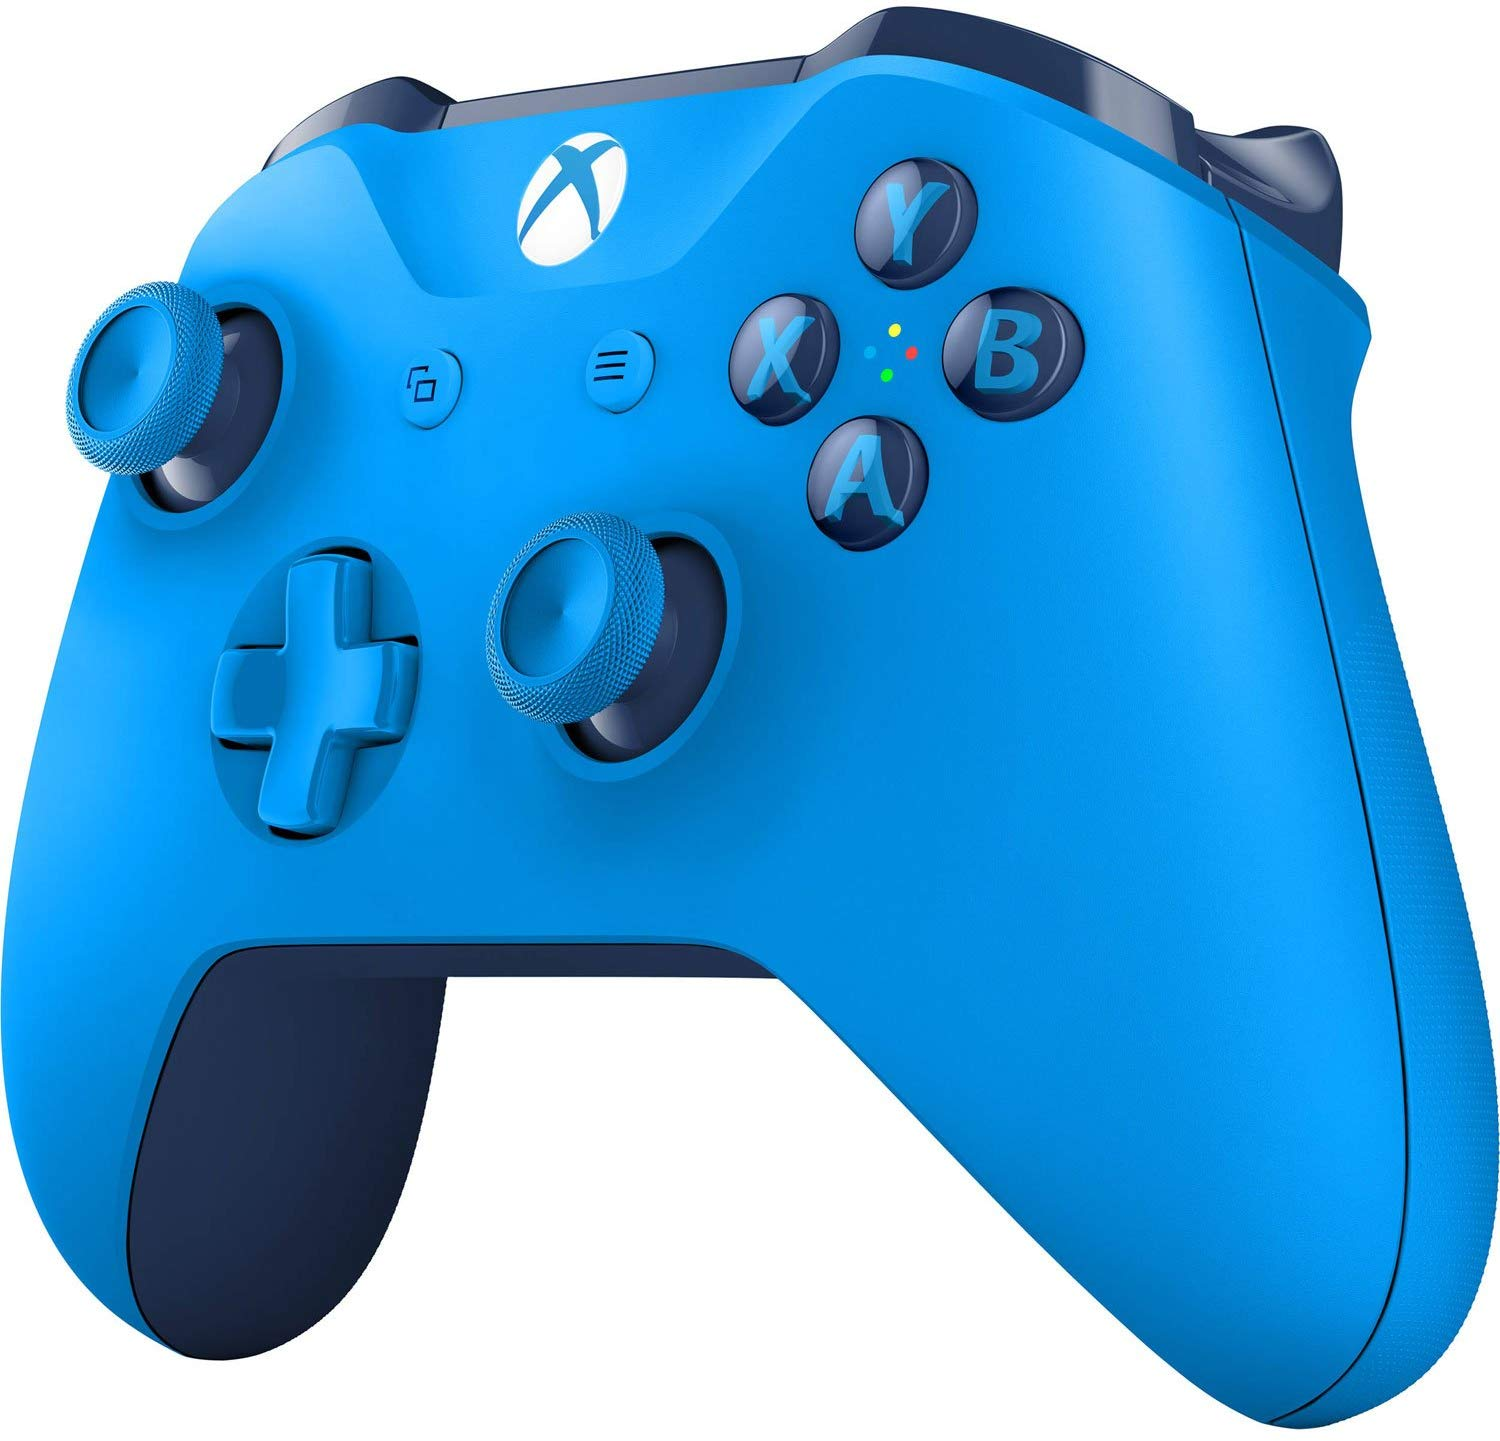 Blue Microsoft Xbox Wireless Controller Side View